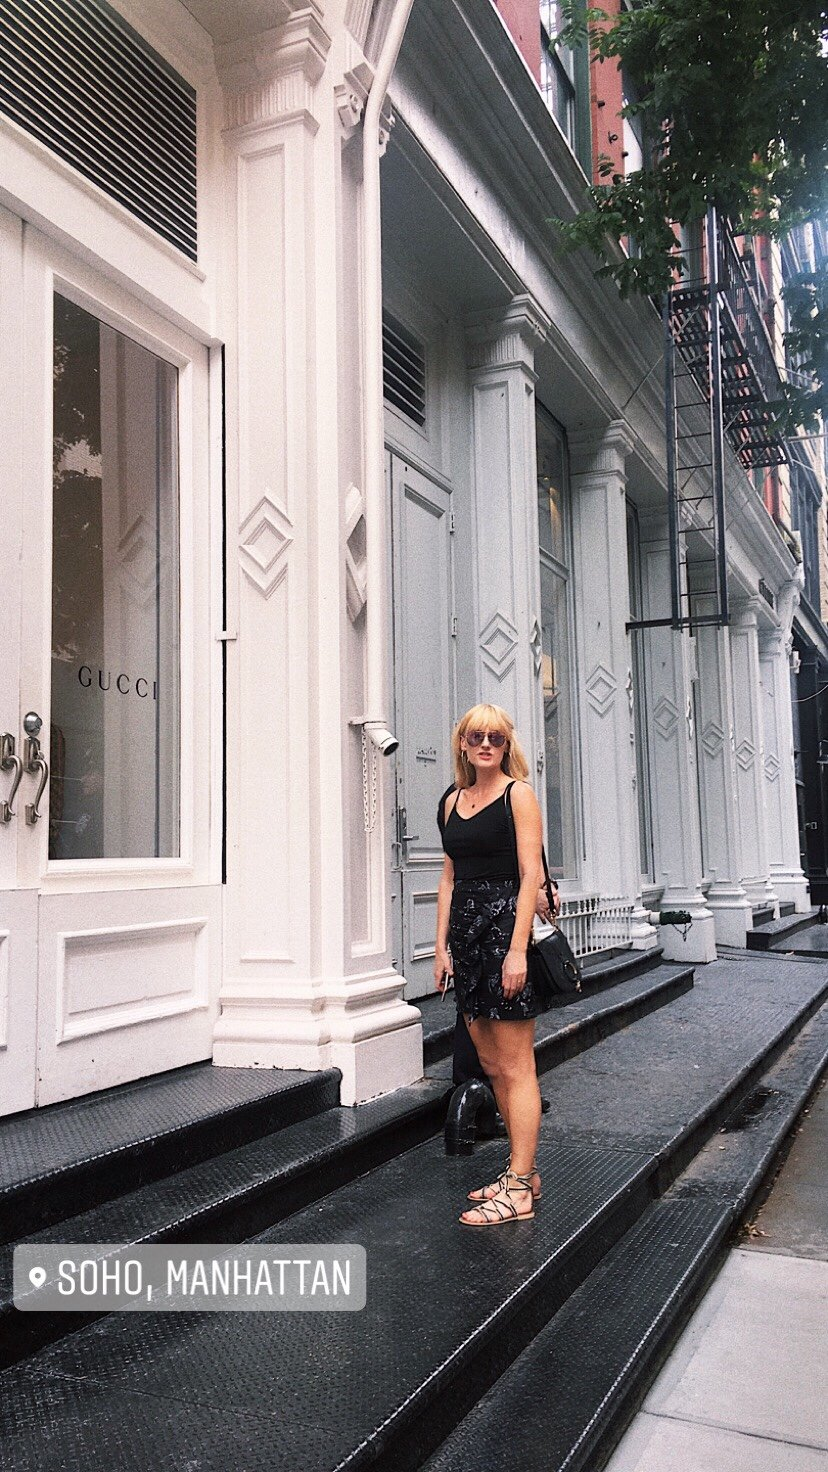 4 Tage in New York City - SoHo Gucci Store - Nowshine Reiseblog ü 40